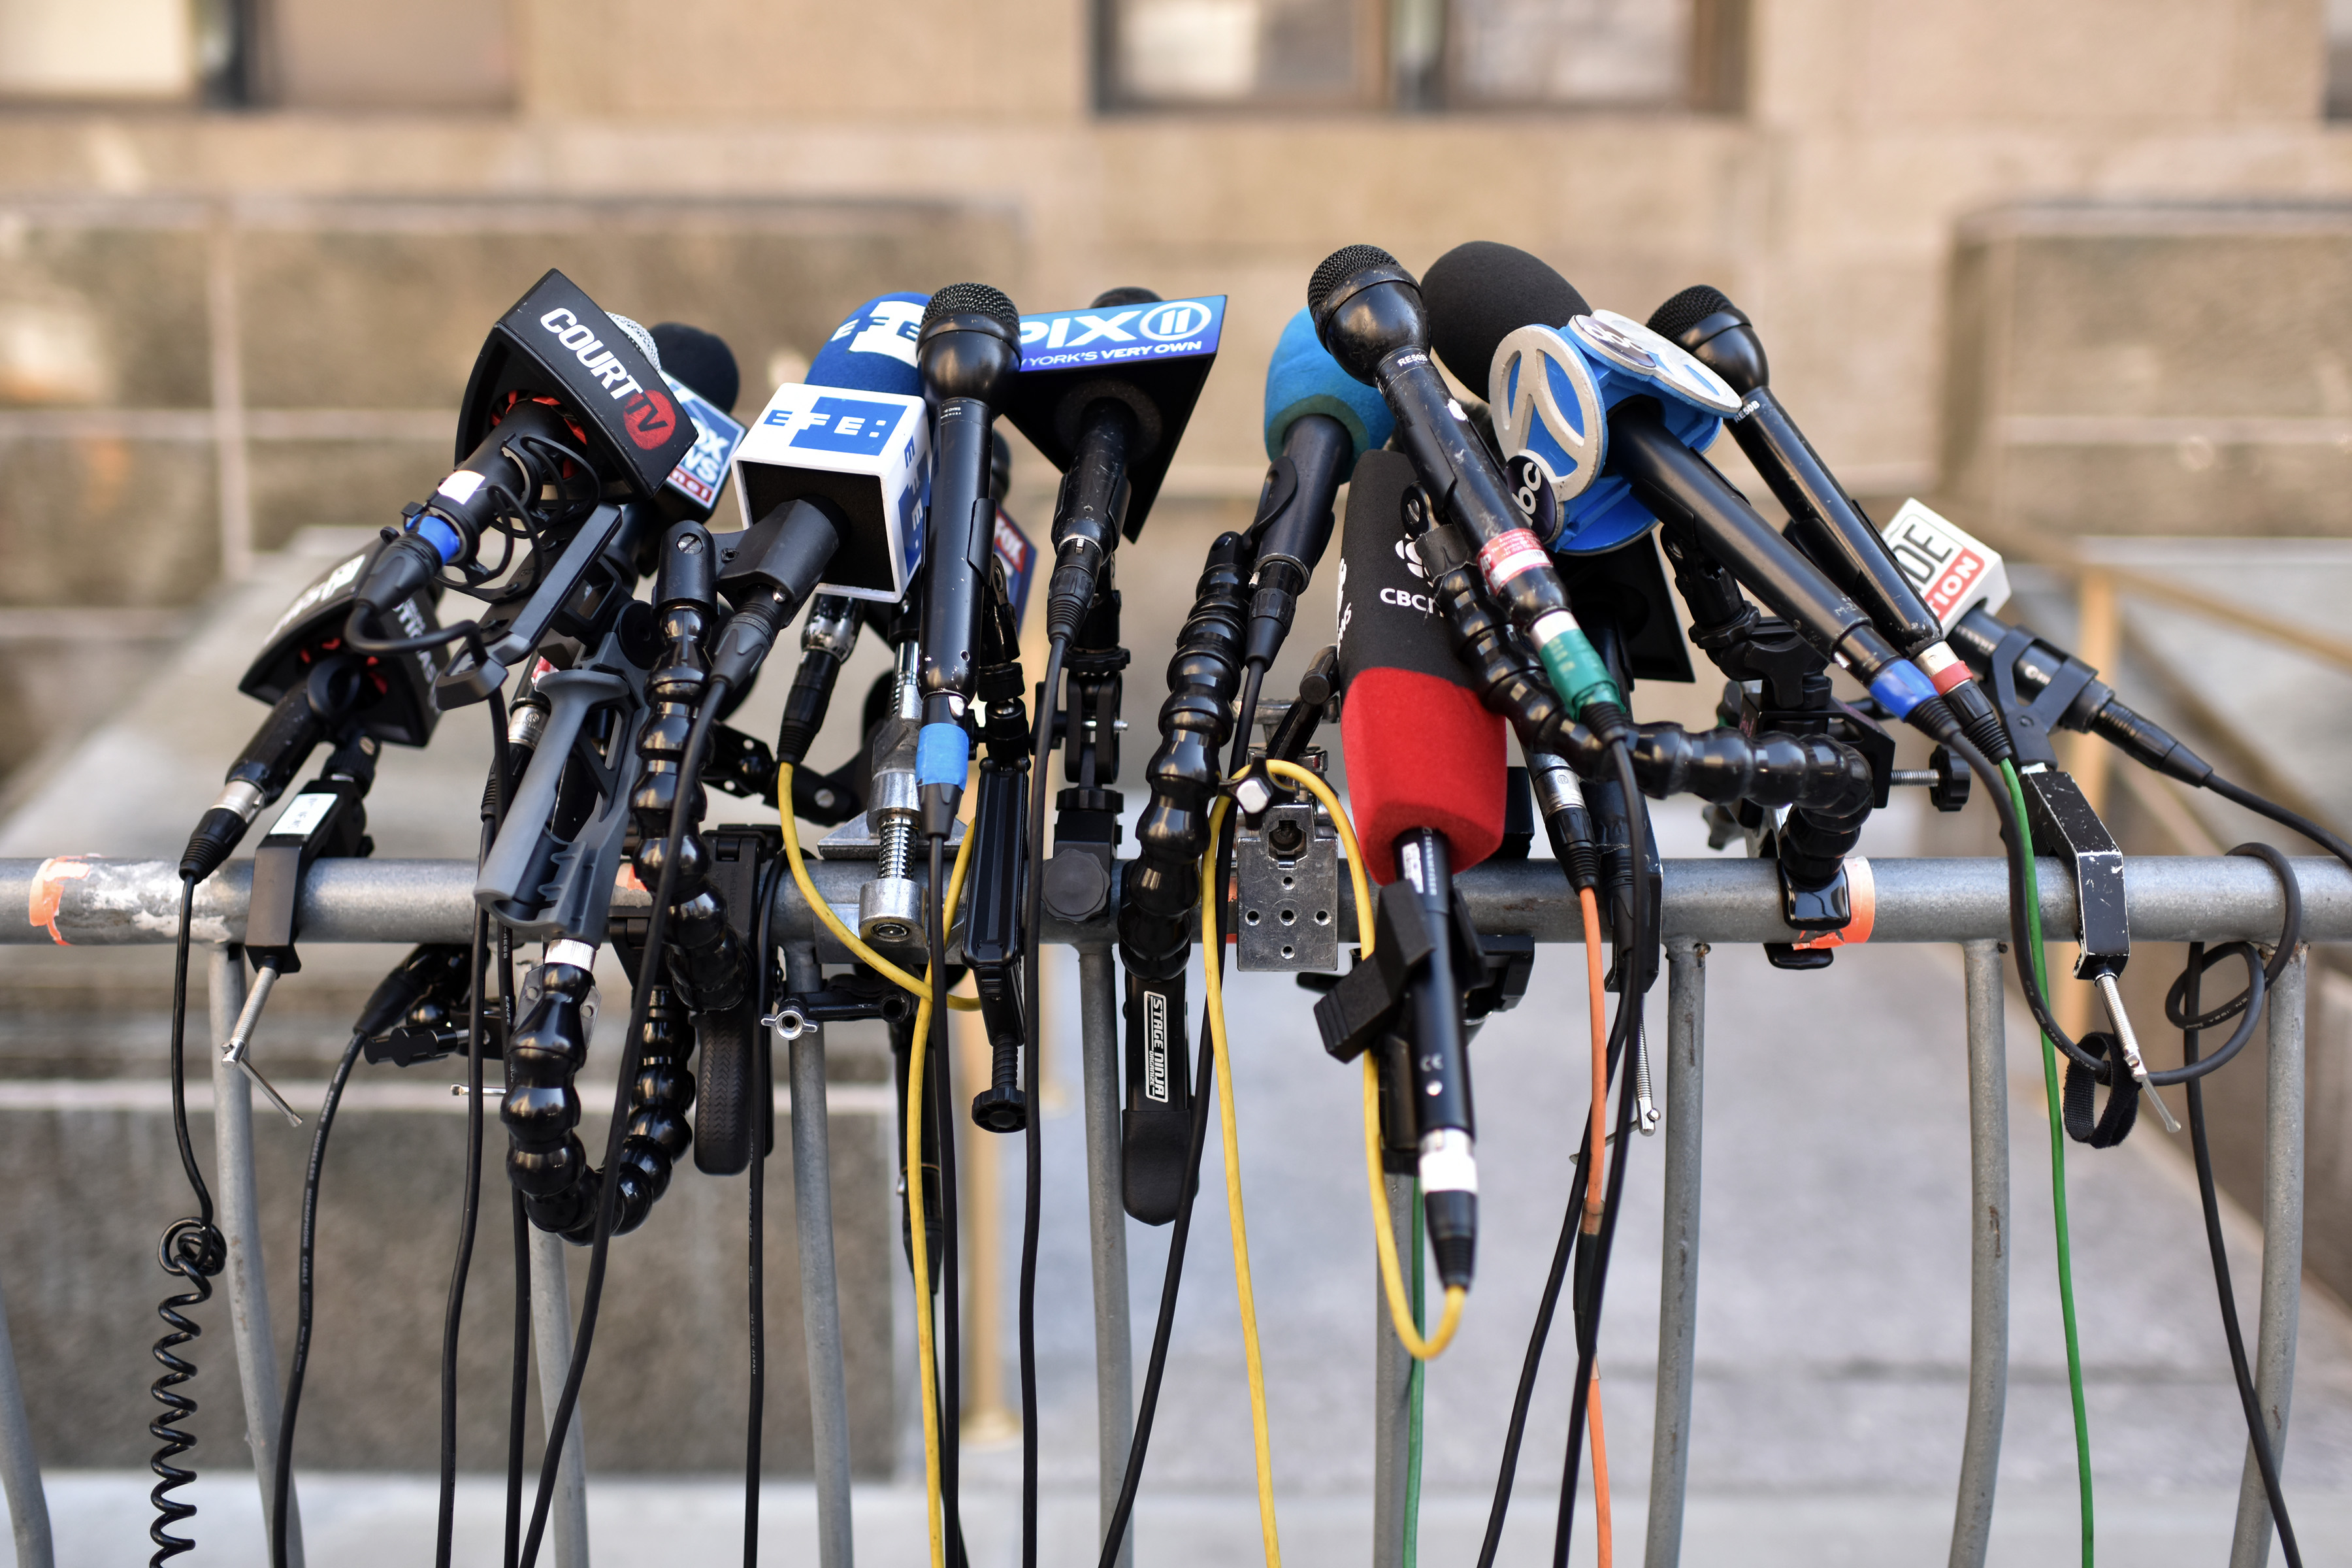 Microphones at the ready as members of the press wait outside the courts as jury deliberates for a second day in the Harvey Weinstein rape trial case at New York City Criminal Court, New York, February 19, 2020. (Anthony Behar/Sipa USA)No Use UK. No Use Germany.